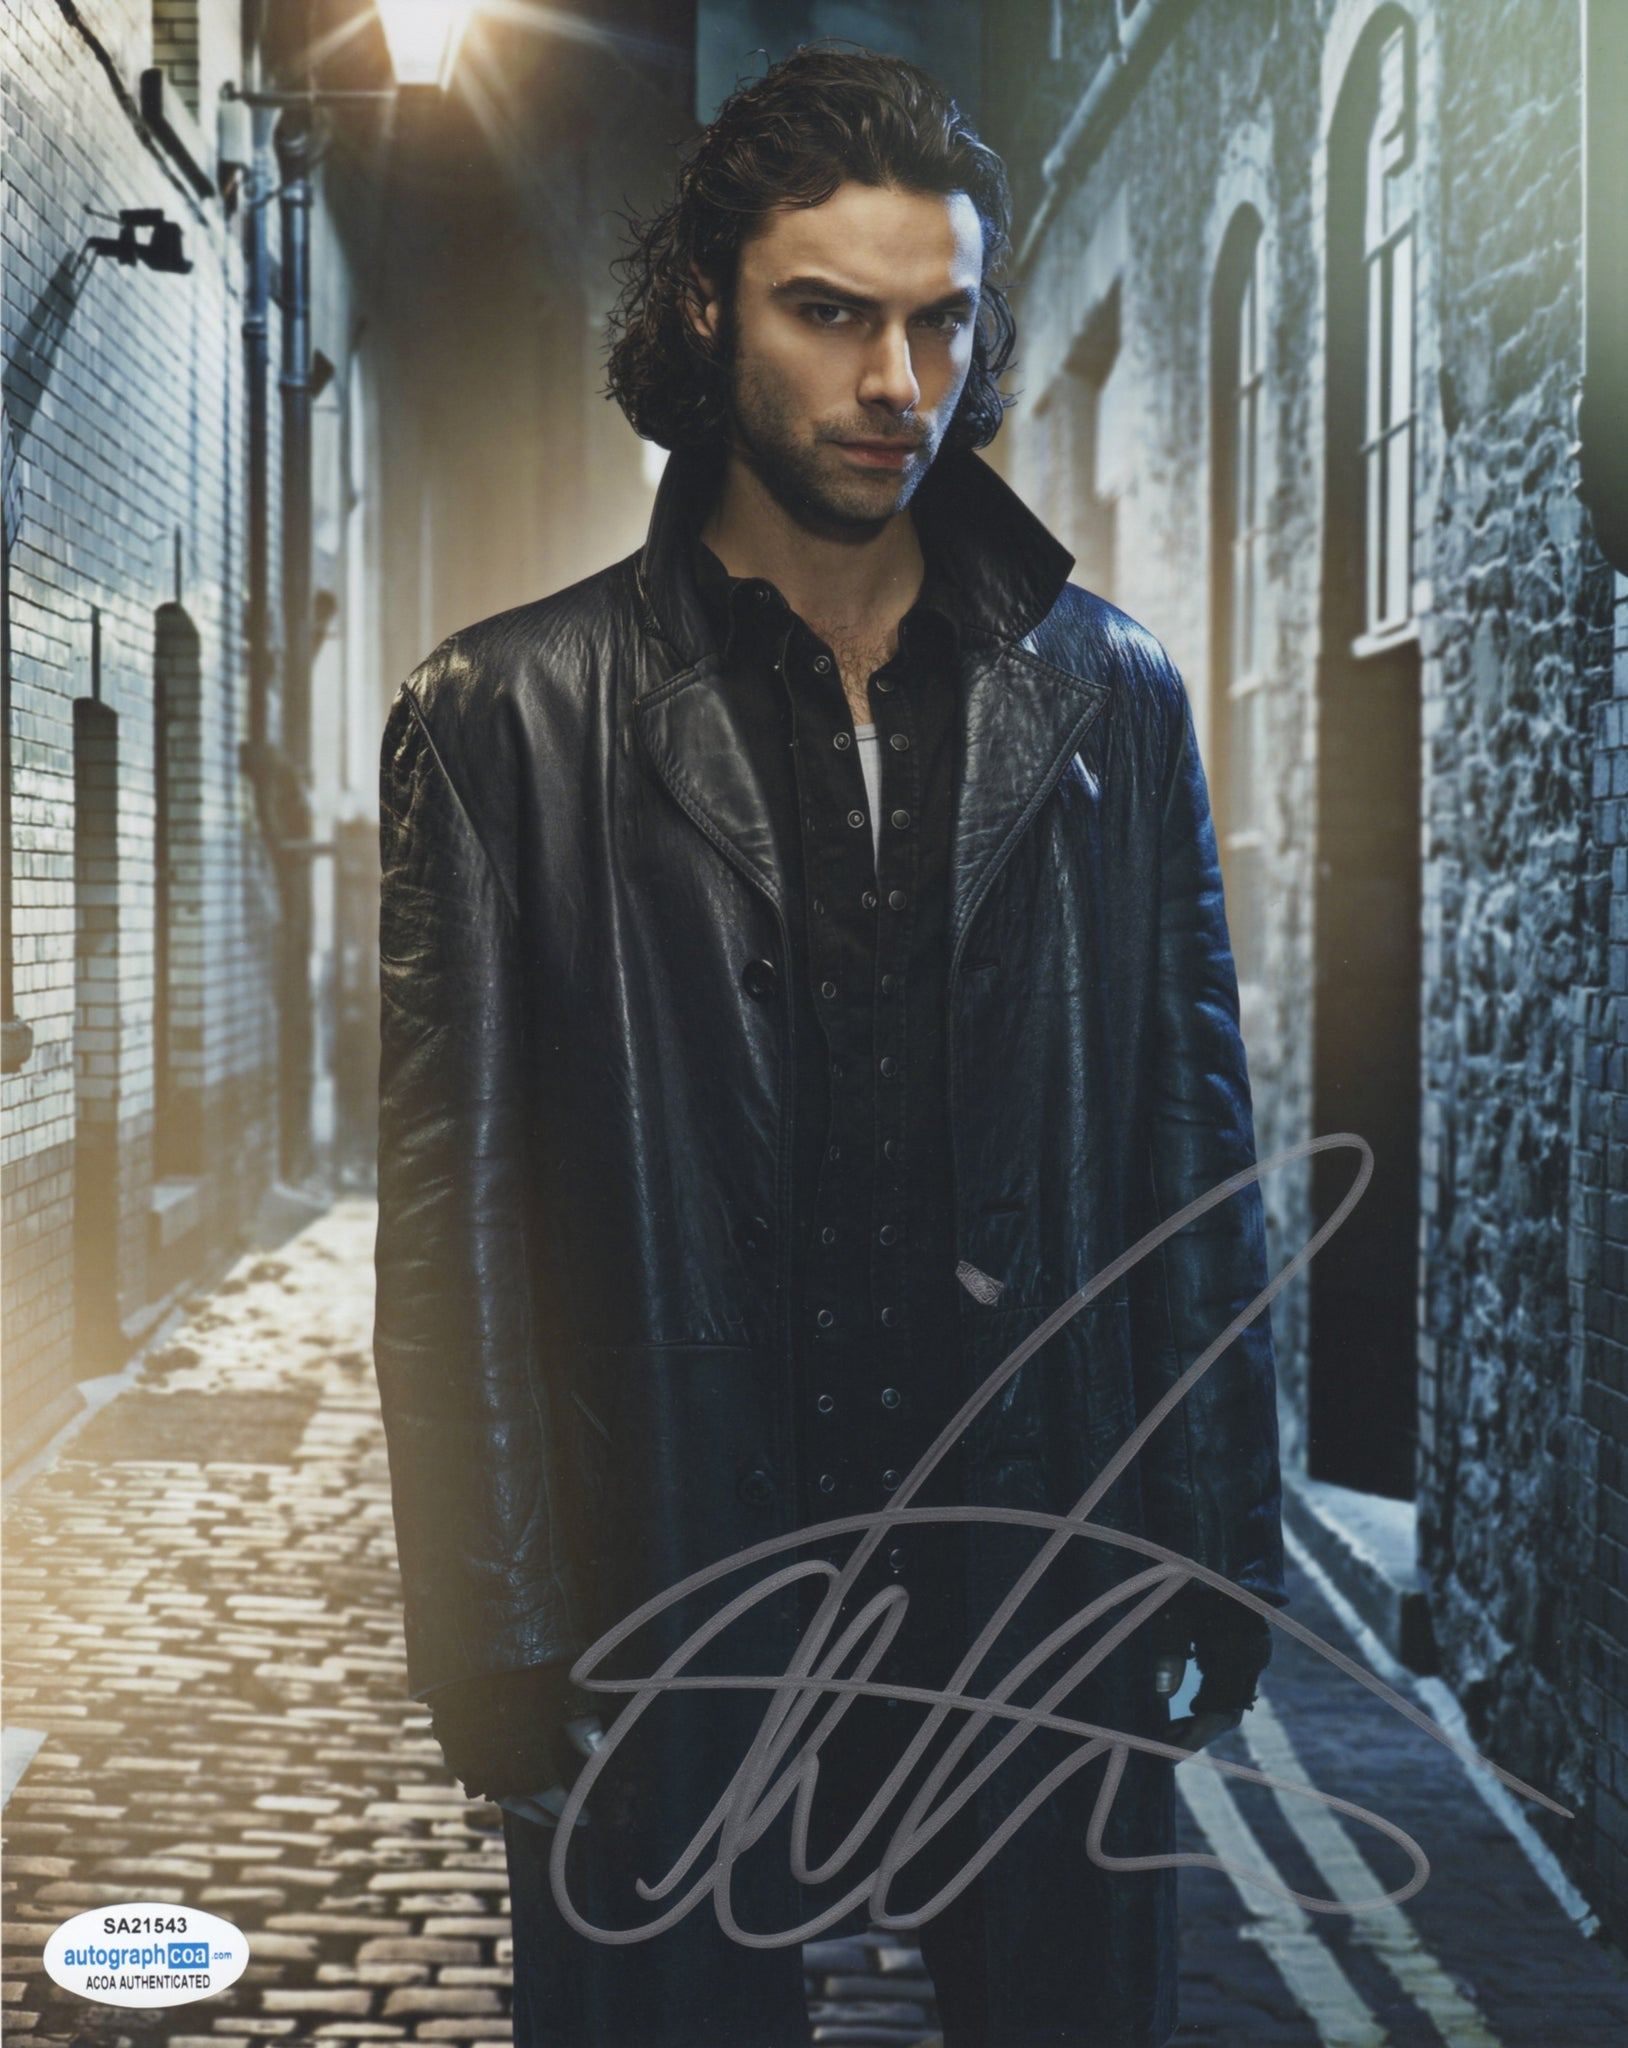 Aidan Turner Being Human Signed Autograph 8x10 Photo ACOA #3 - Outlaw Hobbies Authentic Autographs